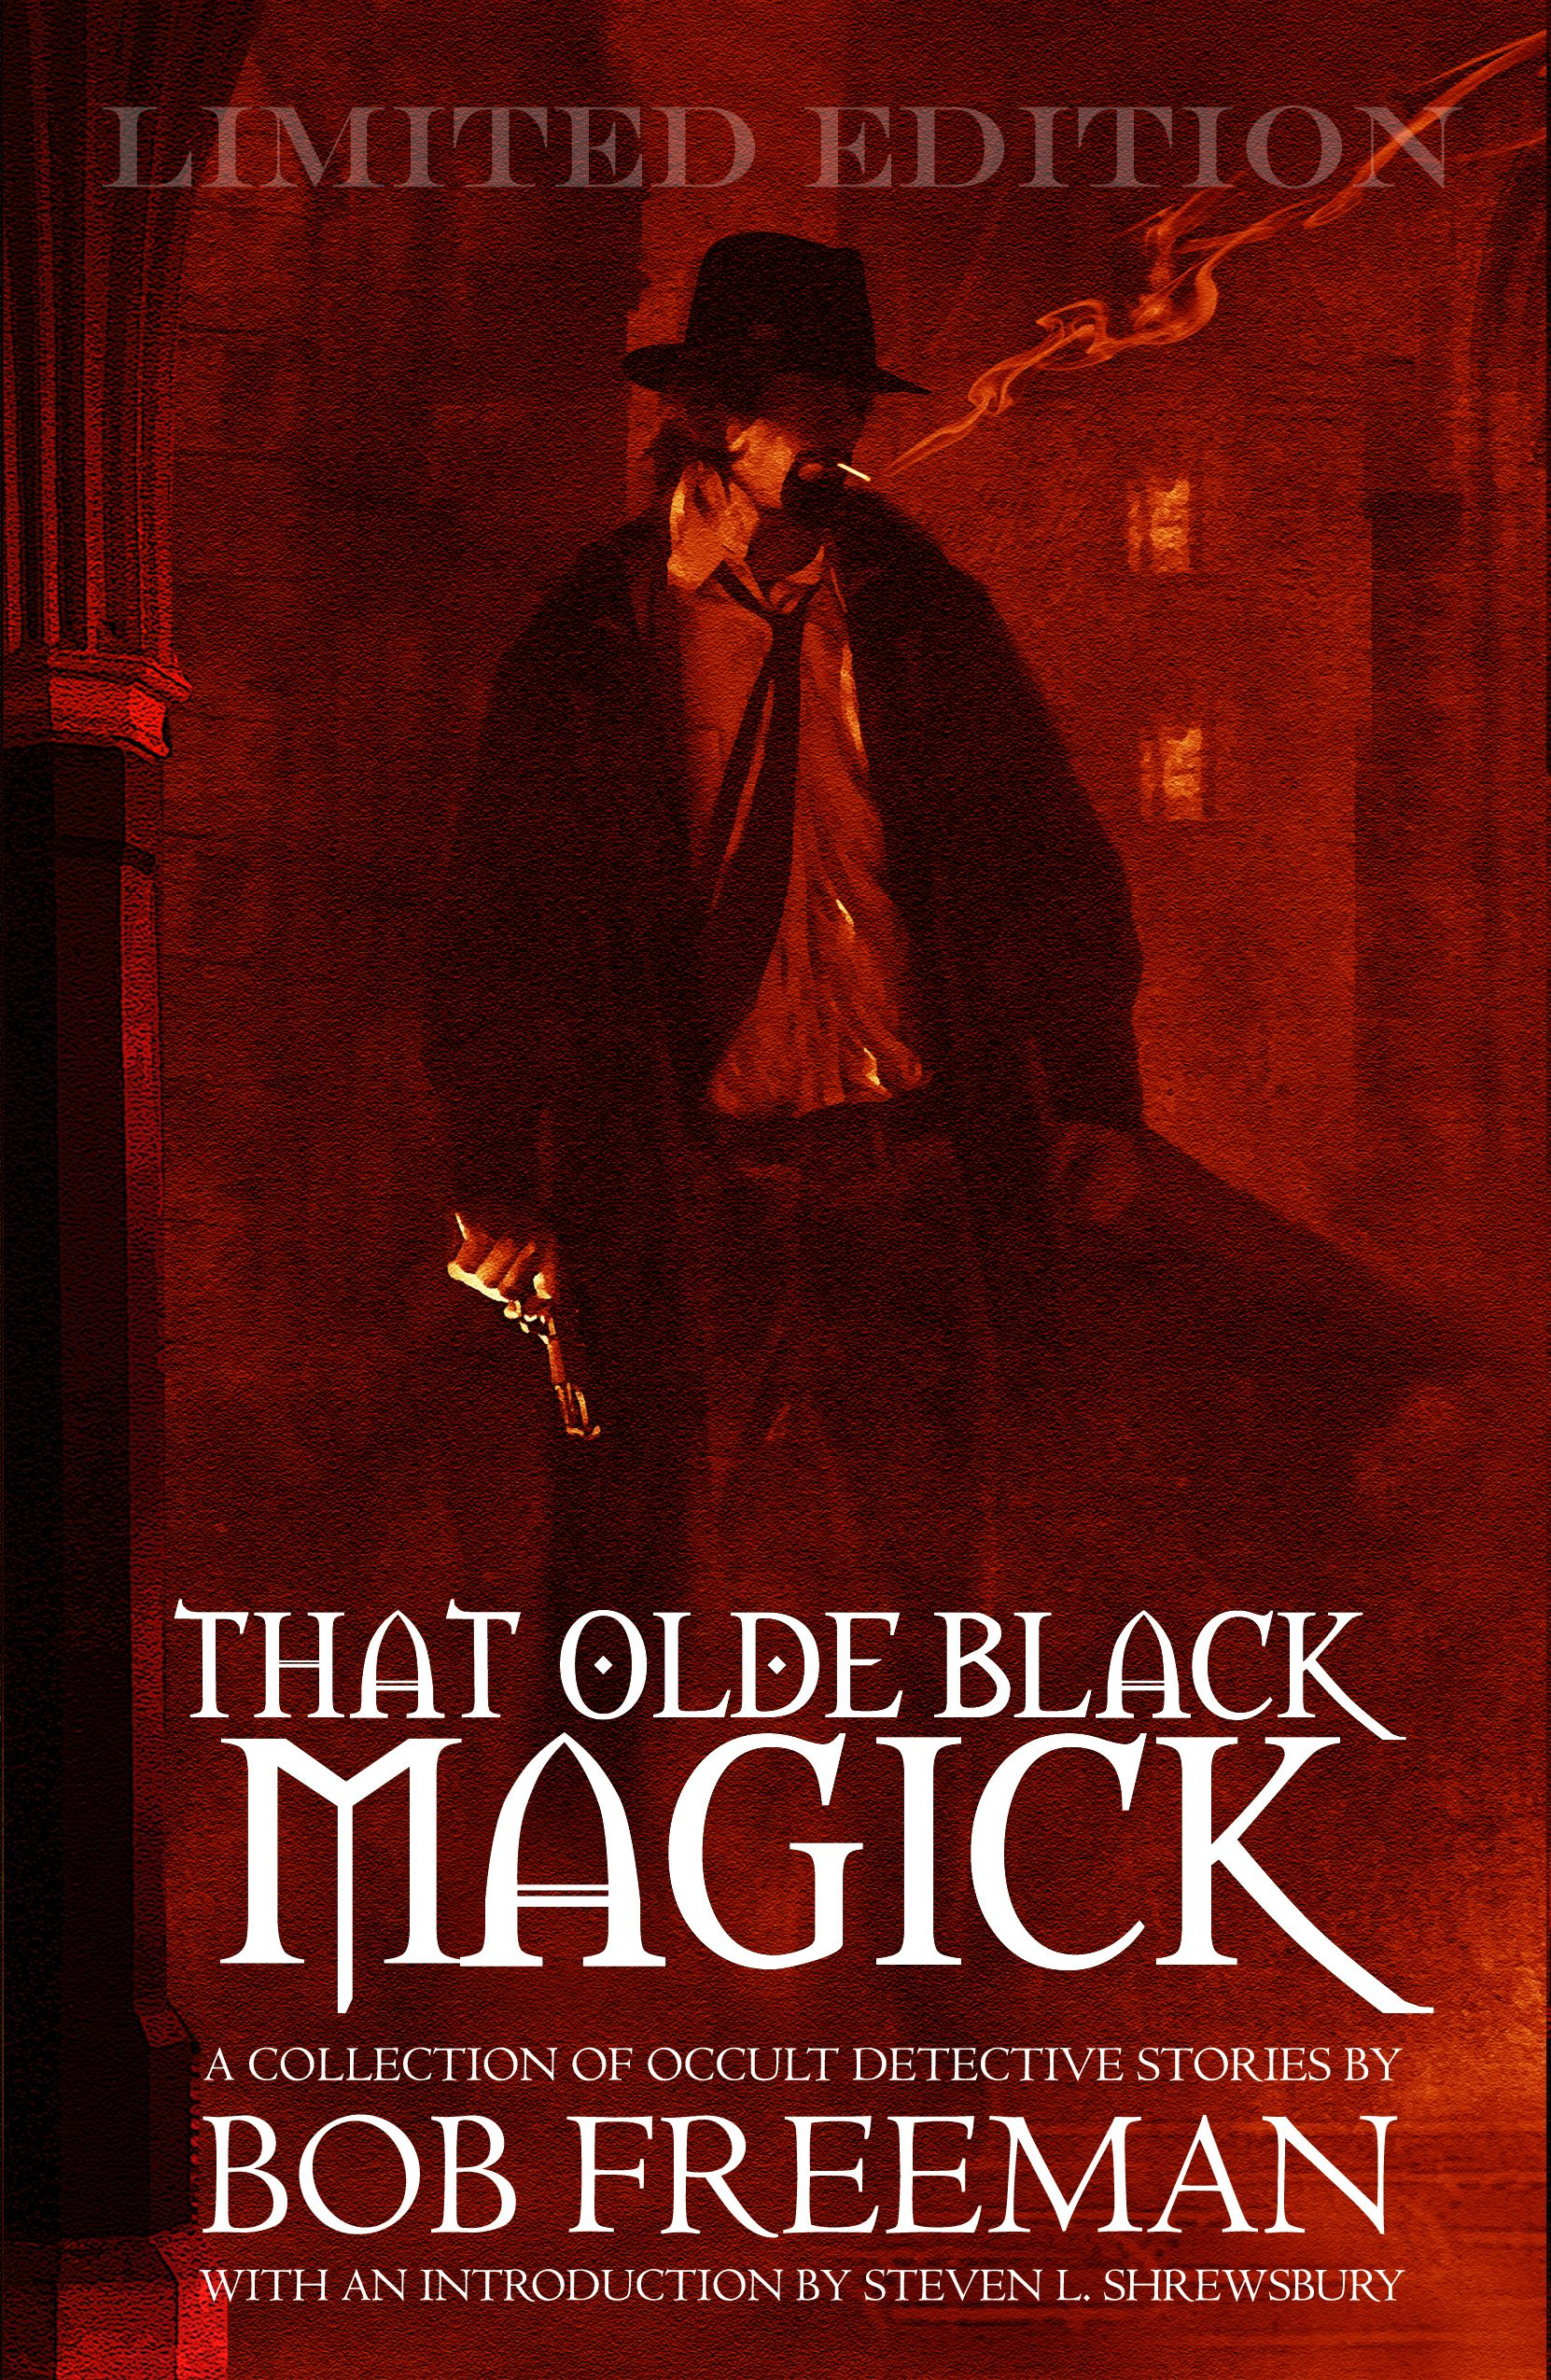 That Olde Black Magick (Caliburn Press, 2009) | Books I've Written